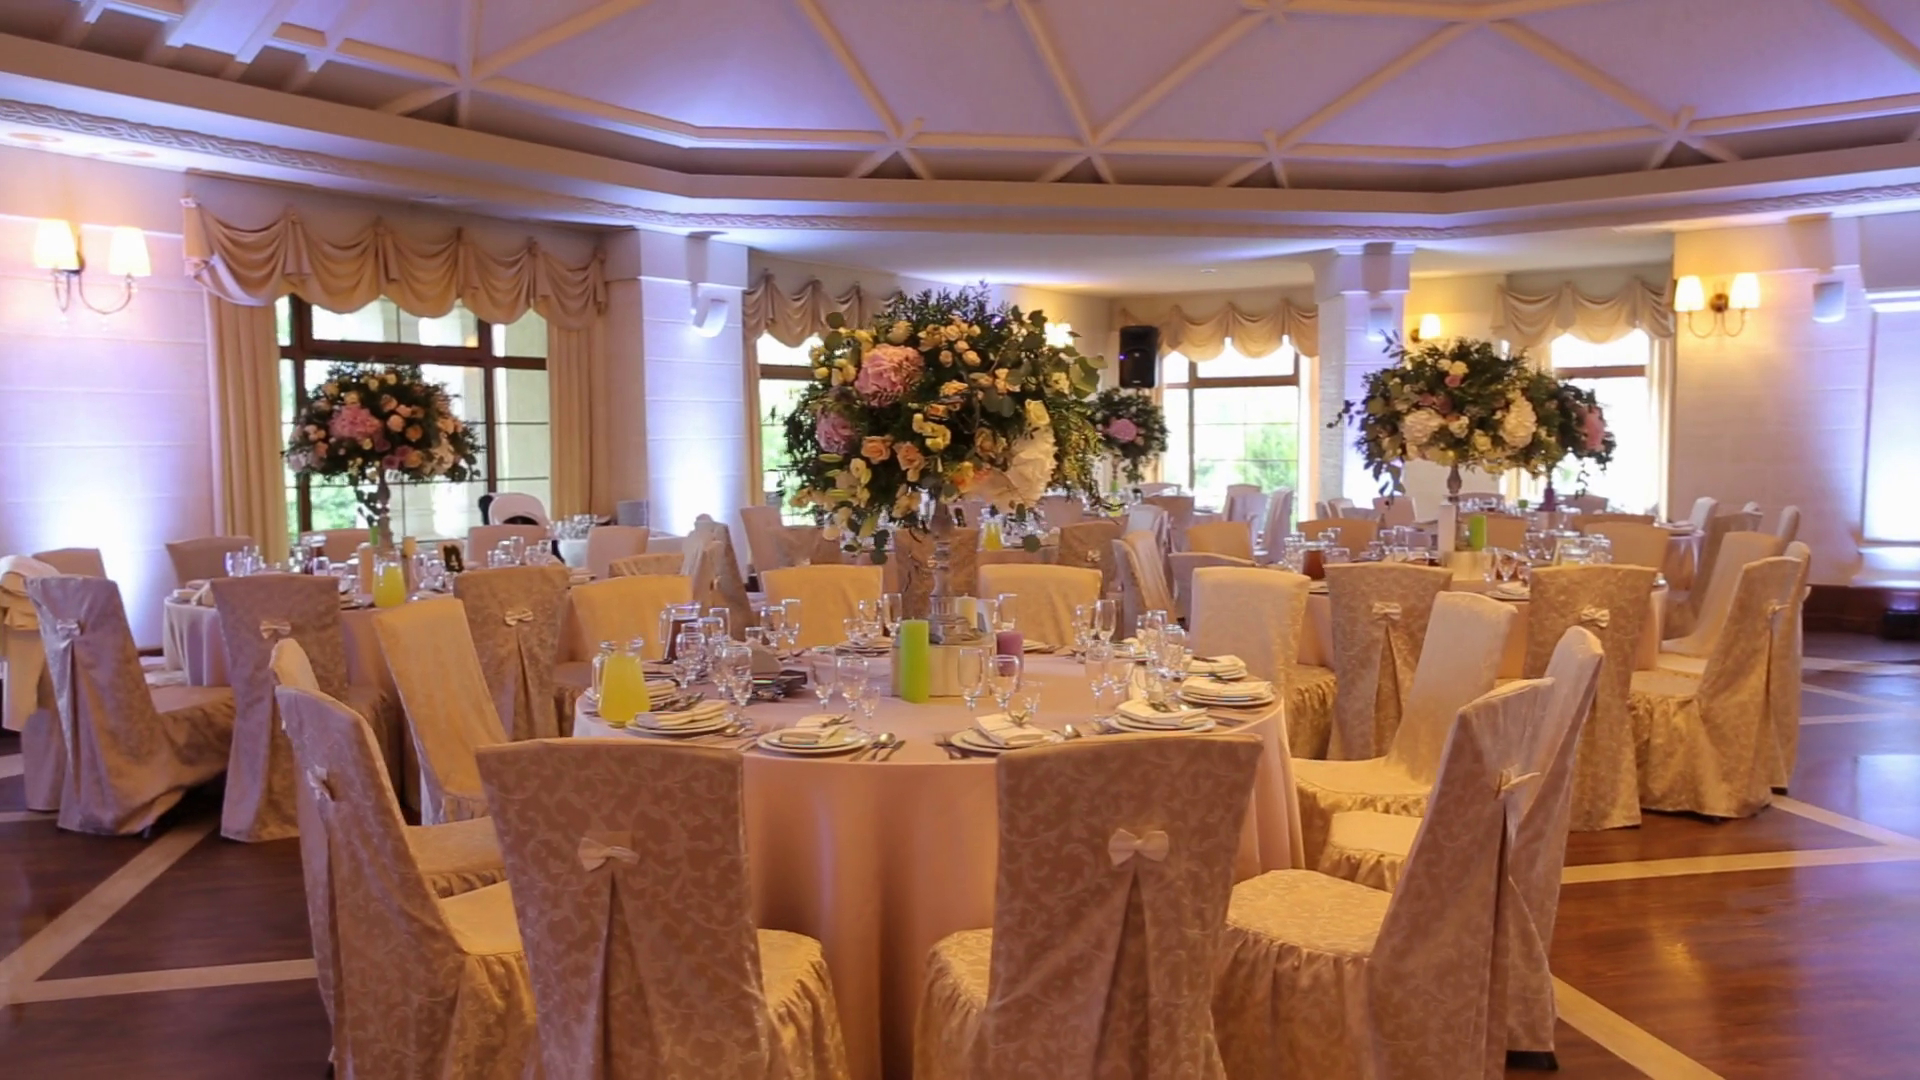 Interior of a wedding hall decoration ready for guests ...